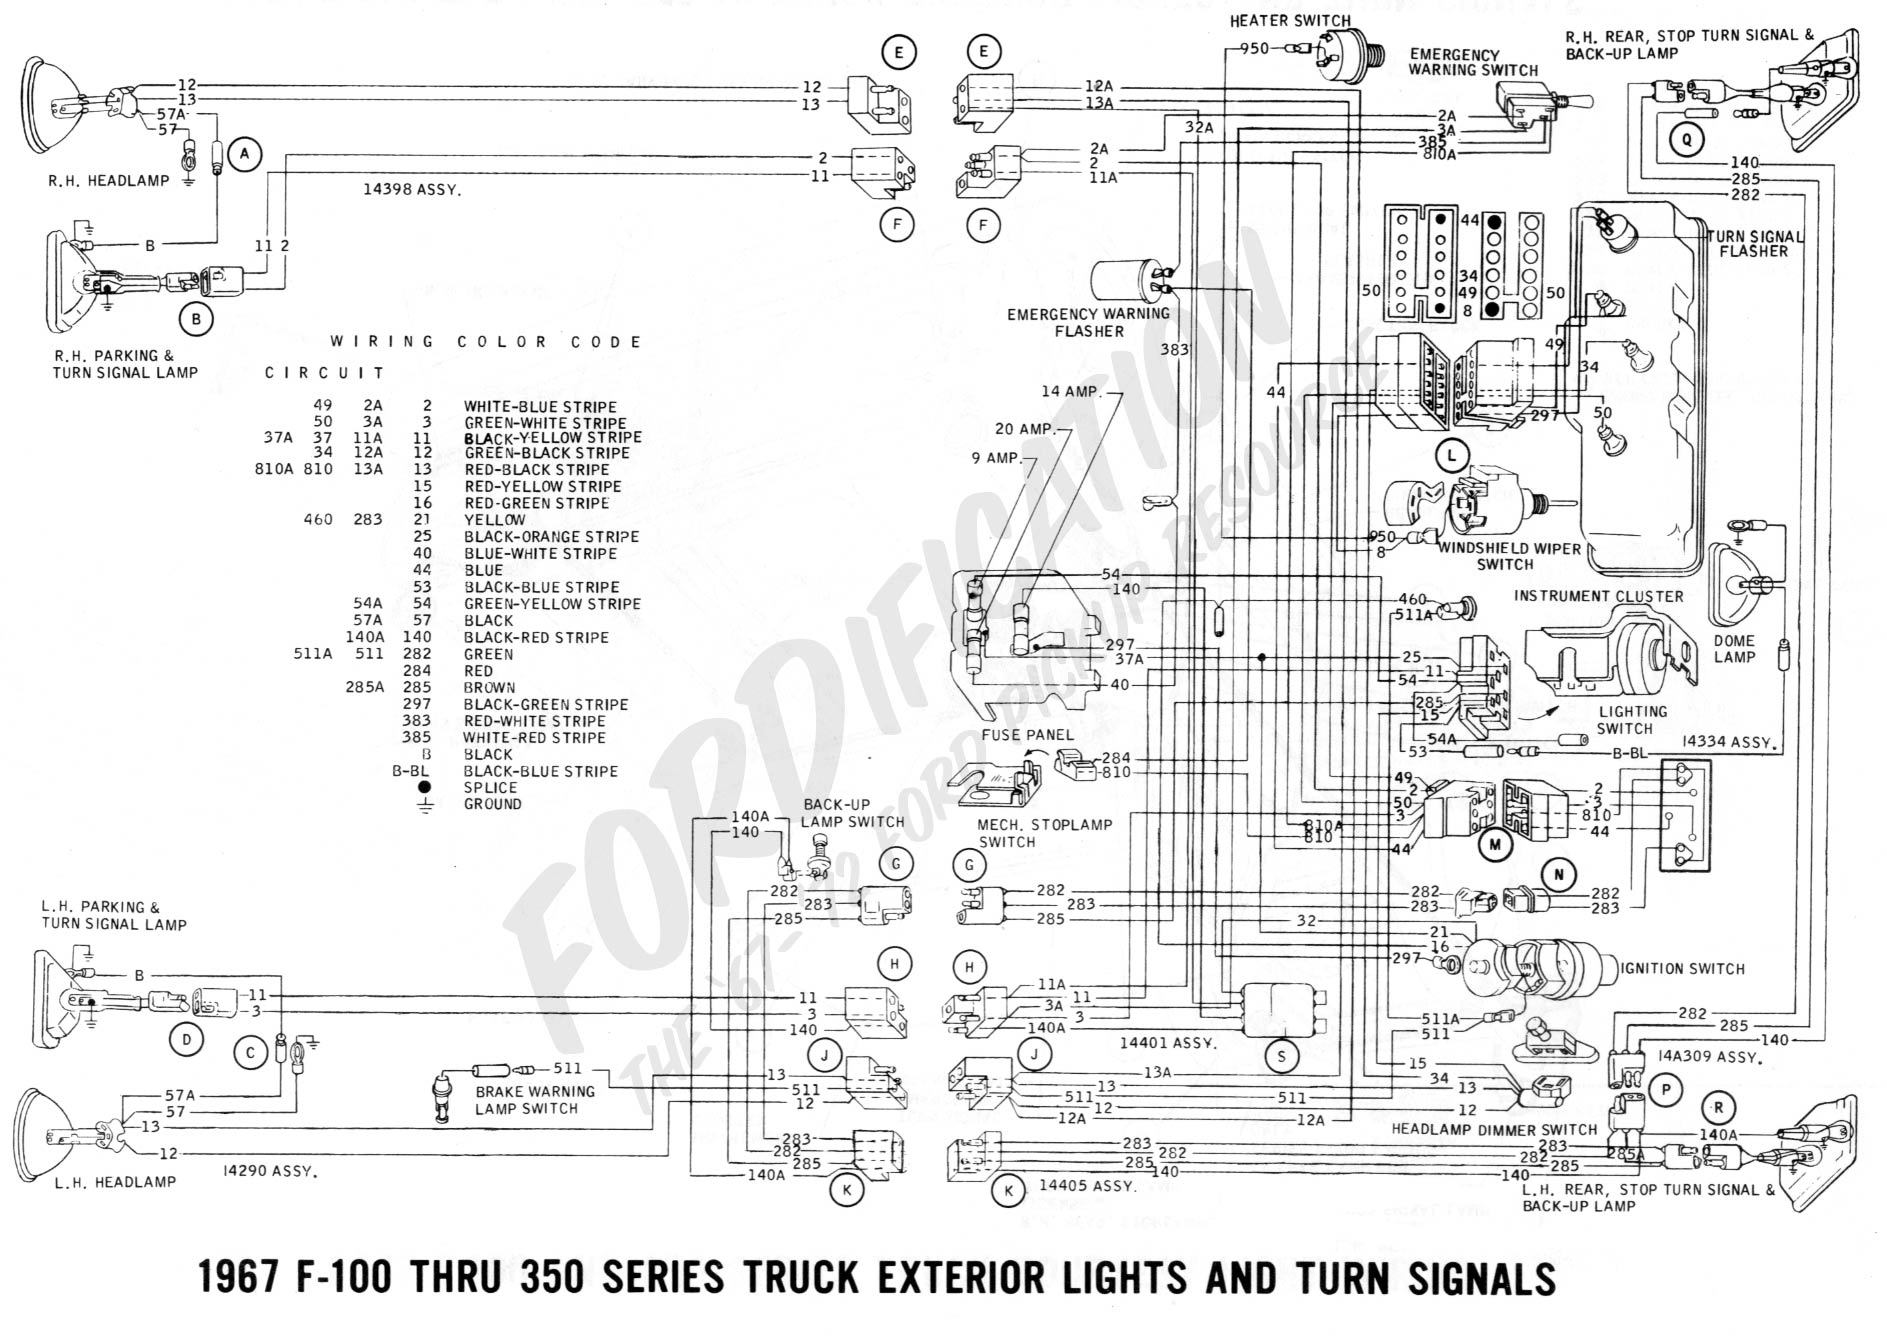 80 1967_exterior_lights_and_turn_signals_page_2_1db6c529c4c9567560e56d6320f993290ba5b803 1967 mustang wiring diagram efcaviation com 1966 mustang alternator wiring diagram at mifinder.co